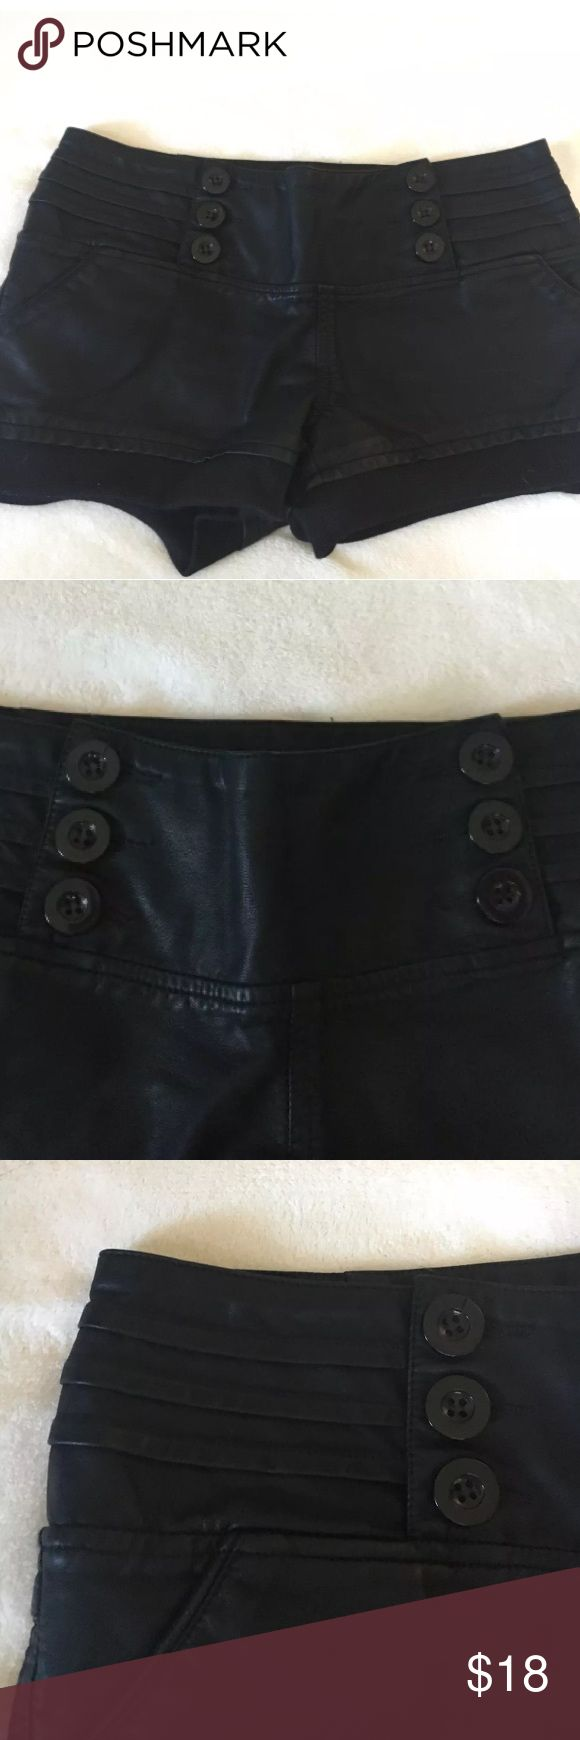 """Countess black leather rave shorts Black PU leather shorts  Very cute buttons  Great condition   Size Medium  Approximate waist 30"""" countess  Shorts"""